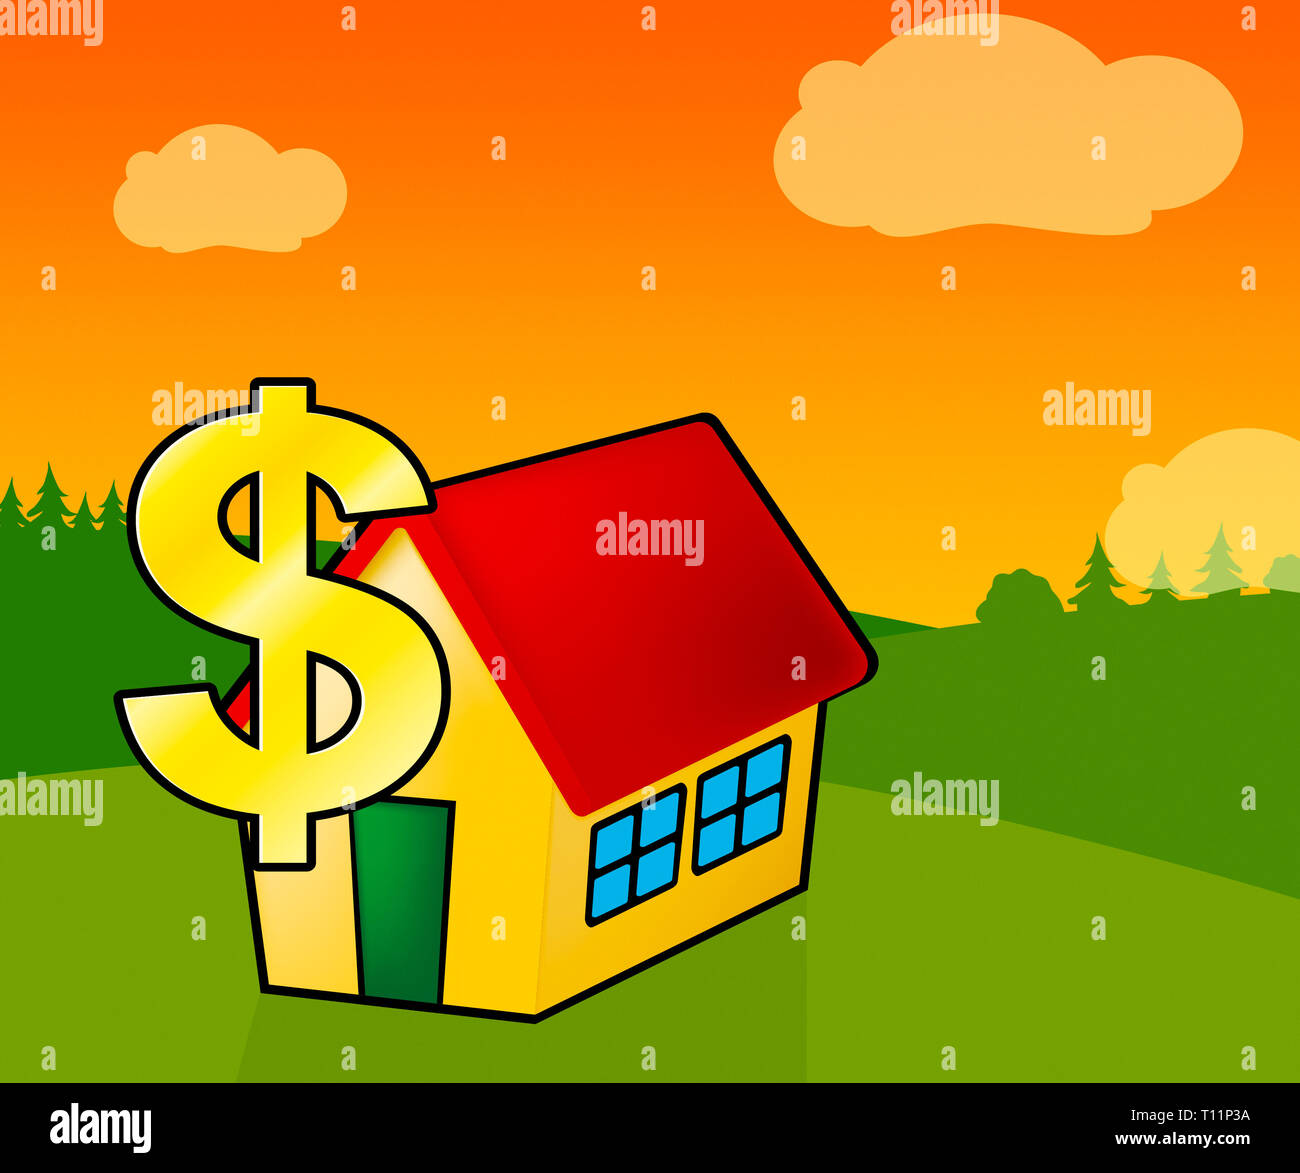 Downsize Home Icon Means Downsizing Property Due To Retirement Or Budget. Find A Tiny House Or Apartment - 3d Illustration Stock Photo